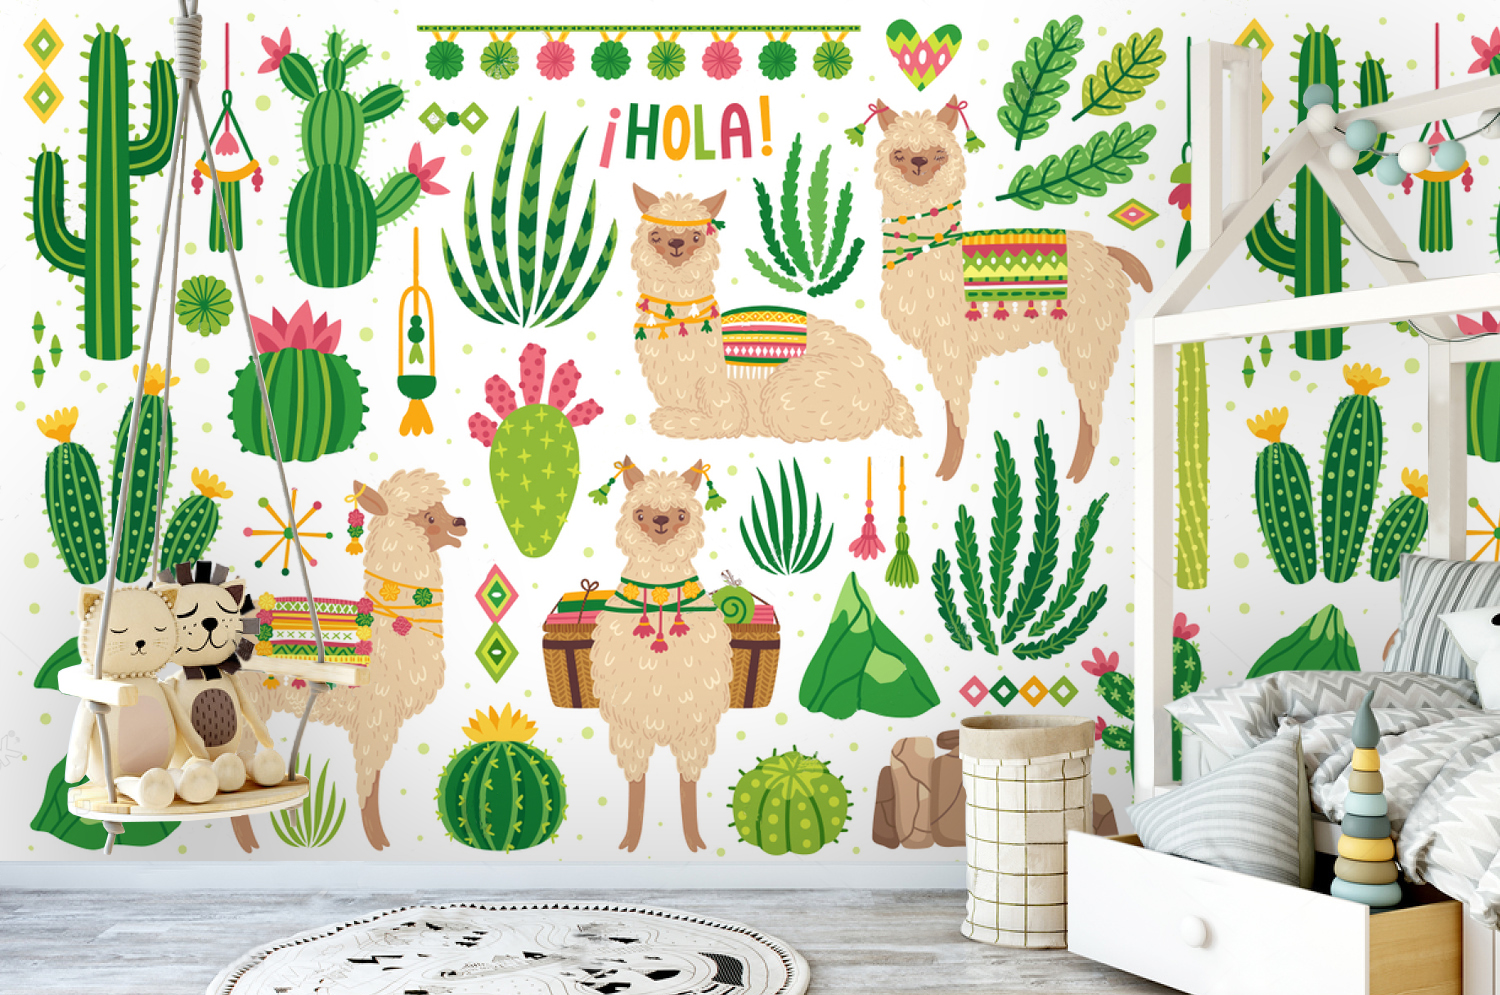 Wallpaper Art Cactus With Lama Nursery